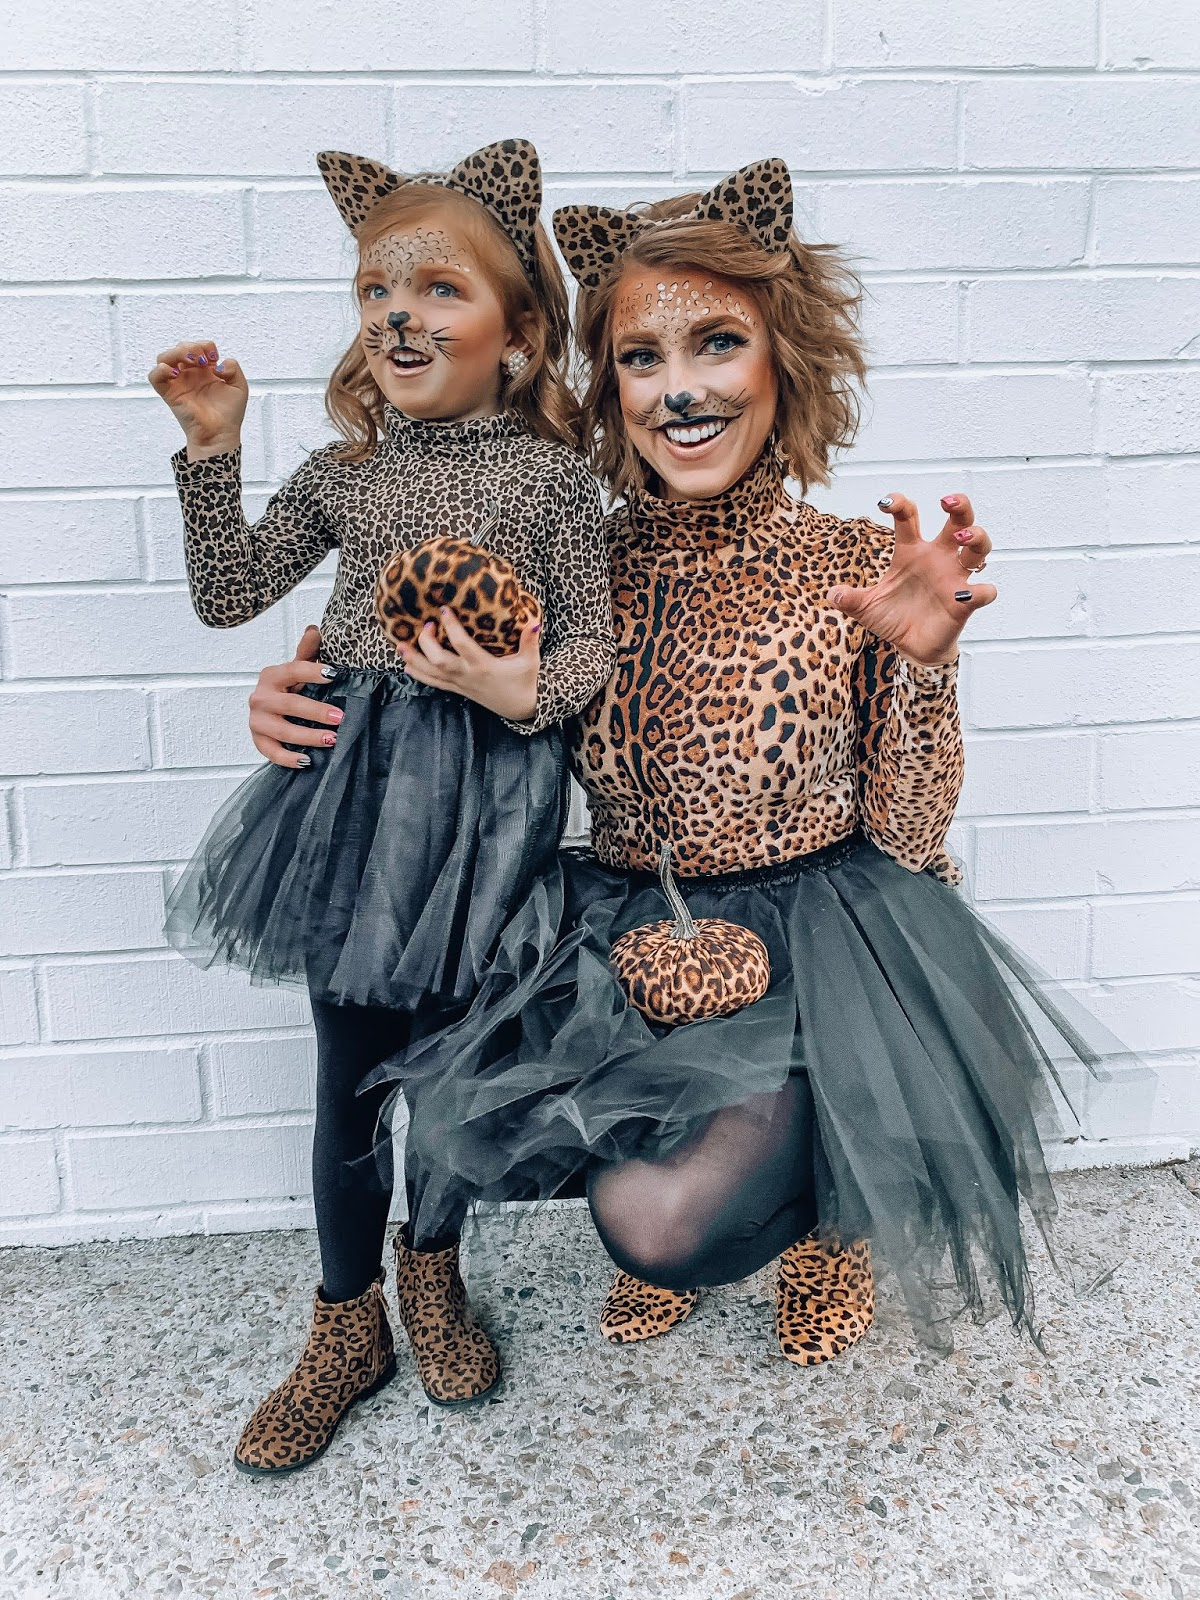 Mommy & Me Halloween Costume Ideas: DIY Leopard Costumes - Something Delightful Blog #leopardcostumes #HalloweenDIY #Mommyandmehalloween #mommyandmecostumes #DIYCostumes #Halloween2019